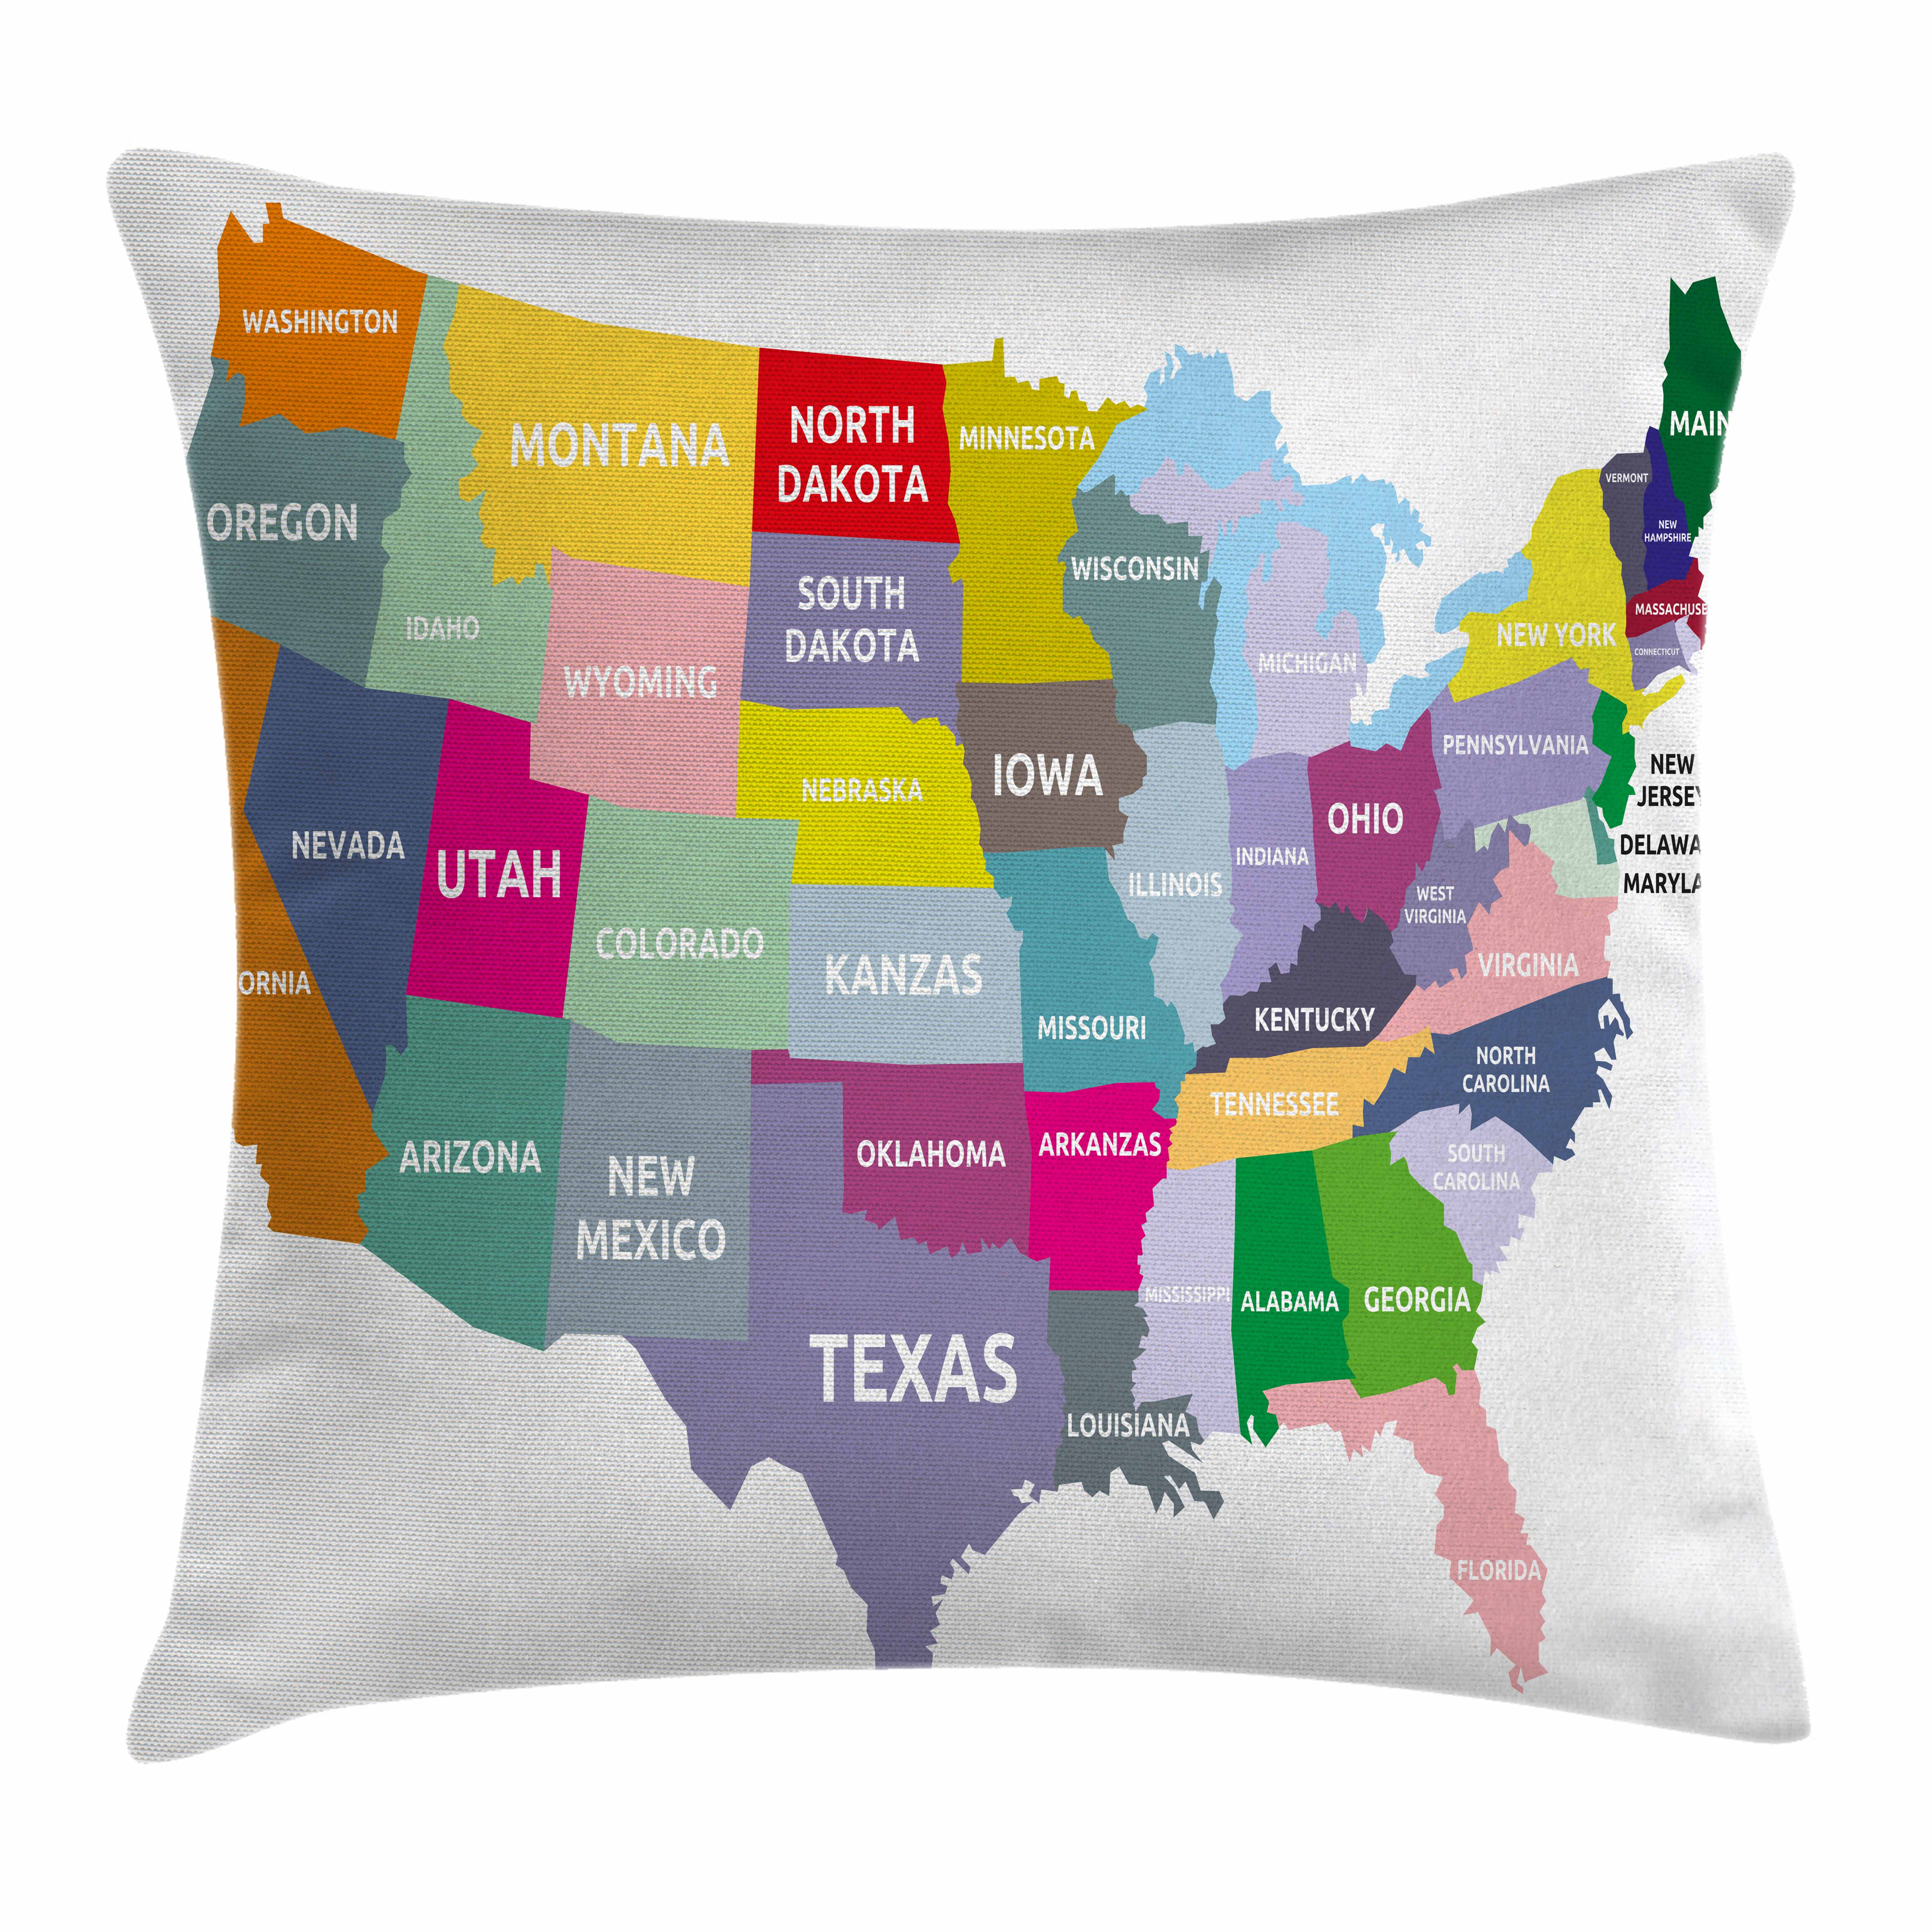 Map Throw Pillow Cushion Cover, USA Map with Name of States in